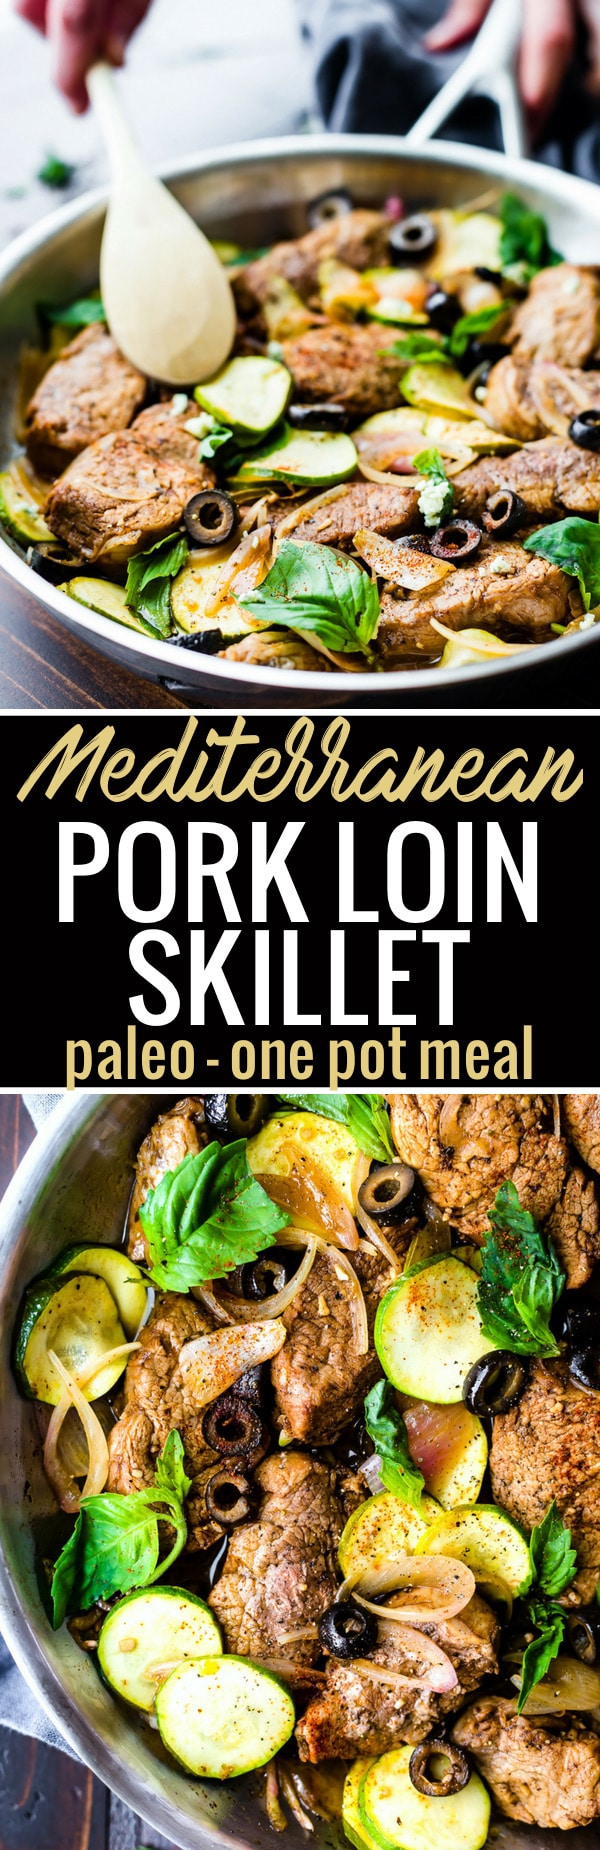 This Mediterranean Marinated Balsamic Pork Loin Skillet with vegetables makes for an easy one pan meal! VeggiePacked, Nourishing, Paleo, and ready 45minutes. You and your familywill love this flavorful pork loin skillet dish in a tangy balsamic marinade. https://www.cottercrunch.com